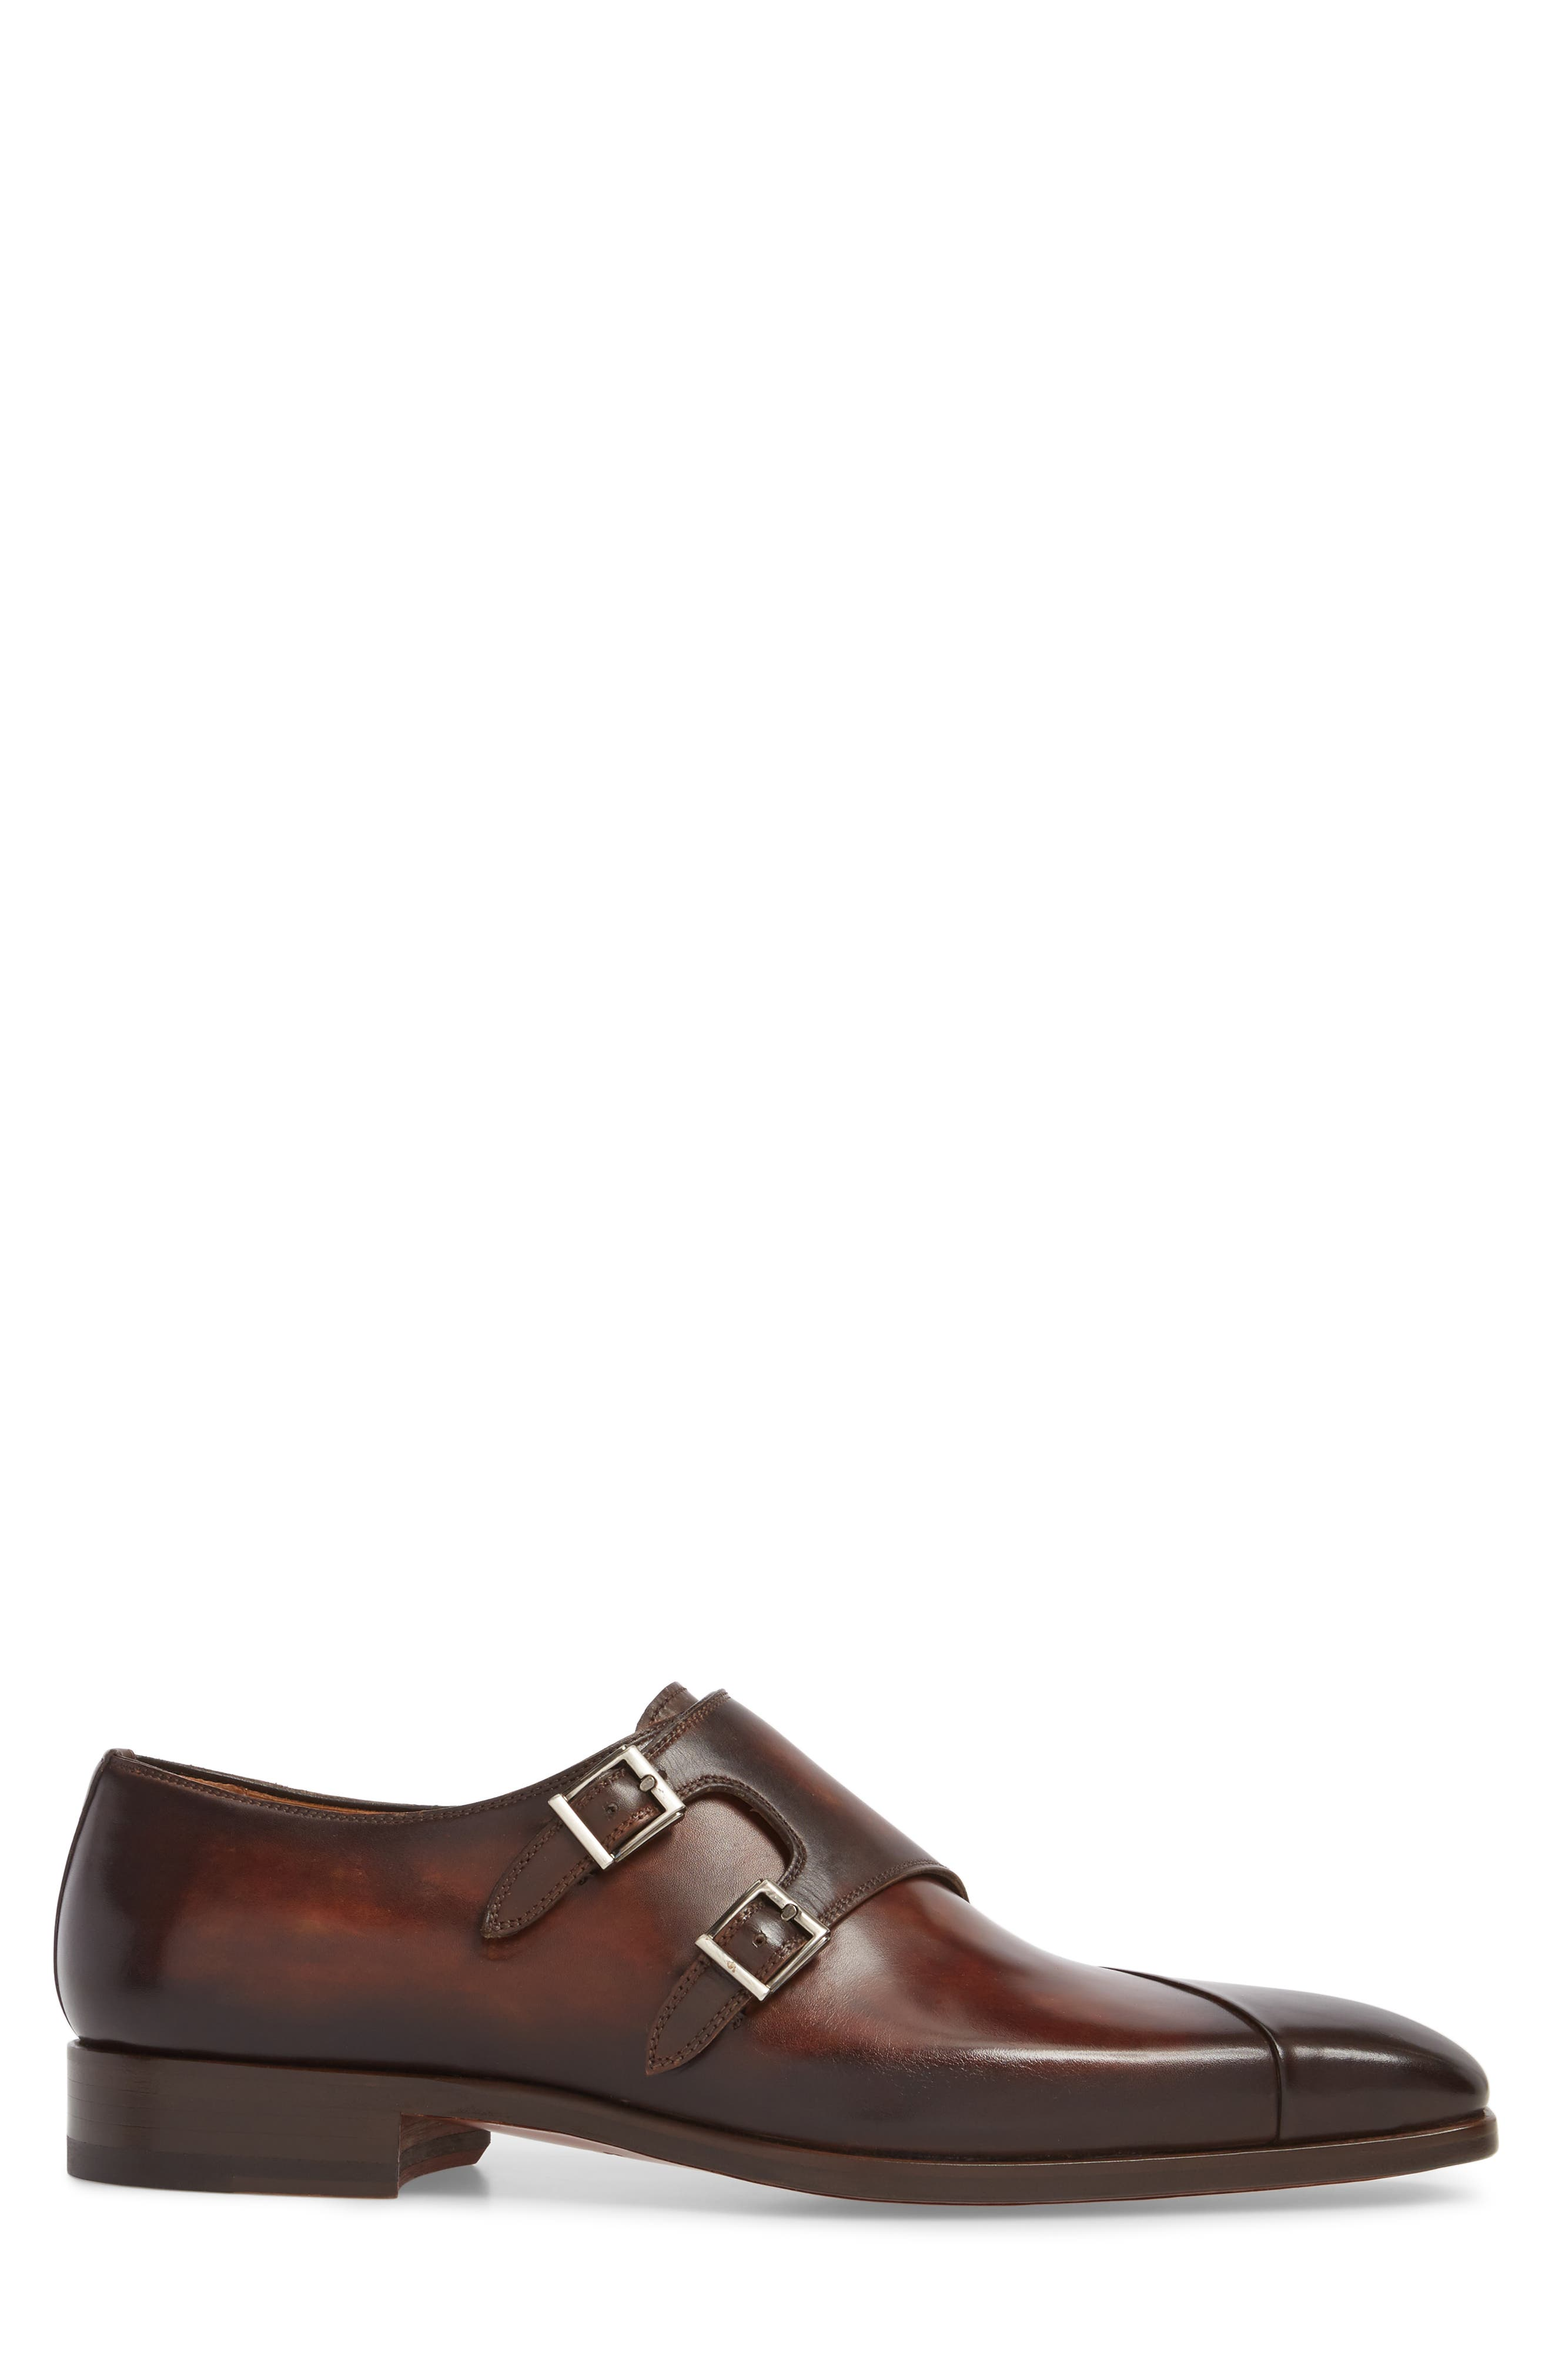 Hafiz Double Strap Monk Shoe,                             Alternate thumbnail 3, color,                             TABACO LEATHER